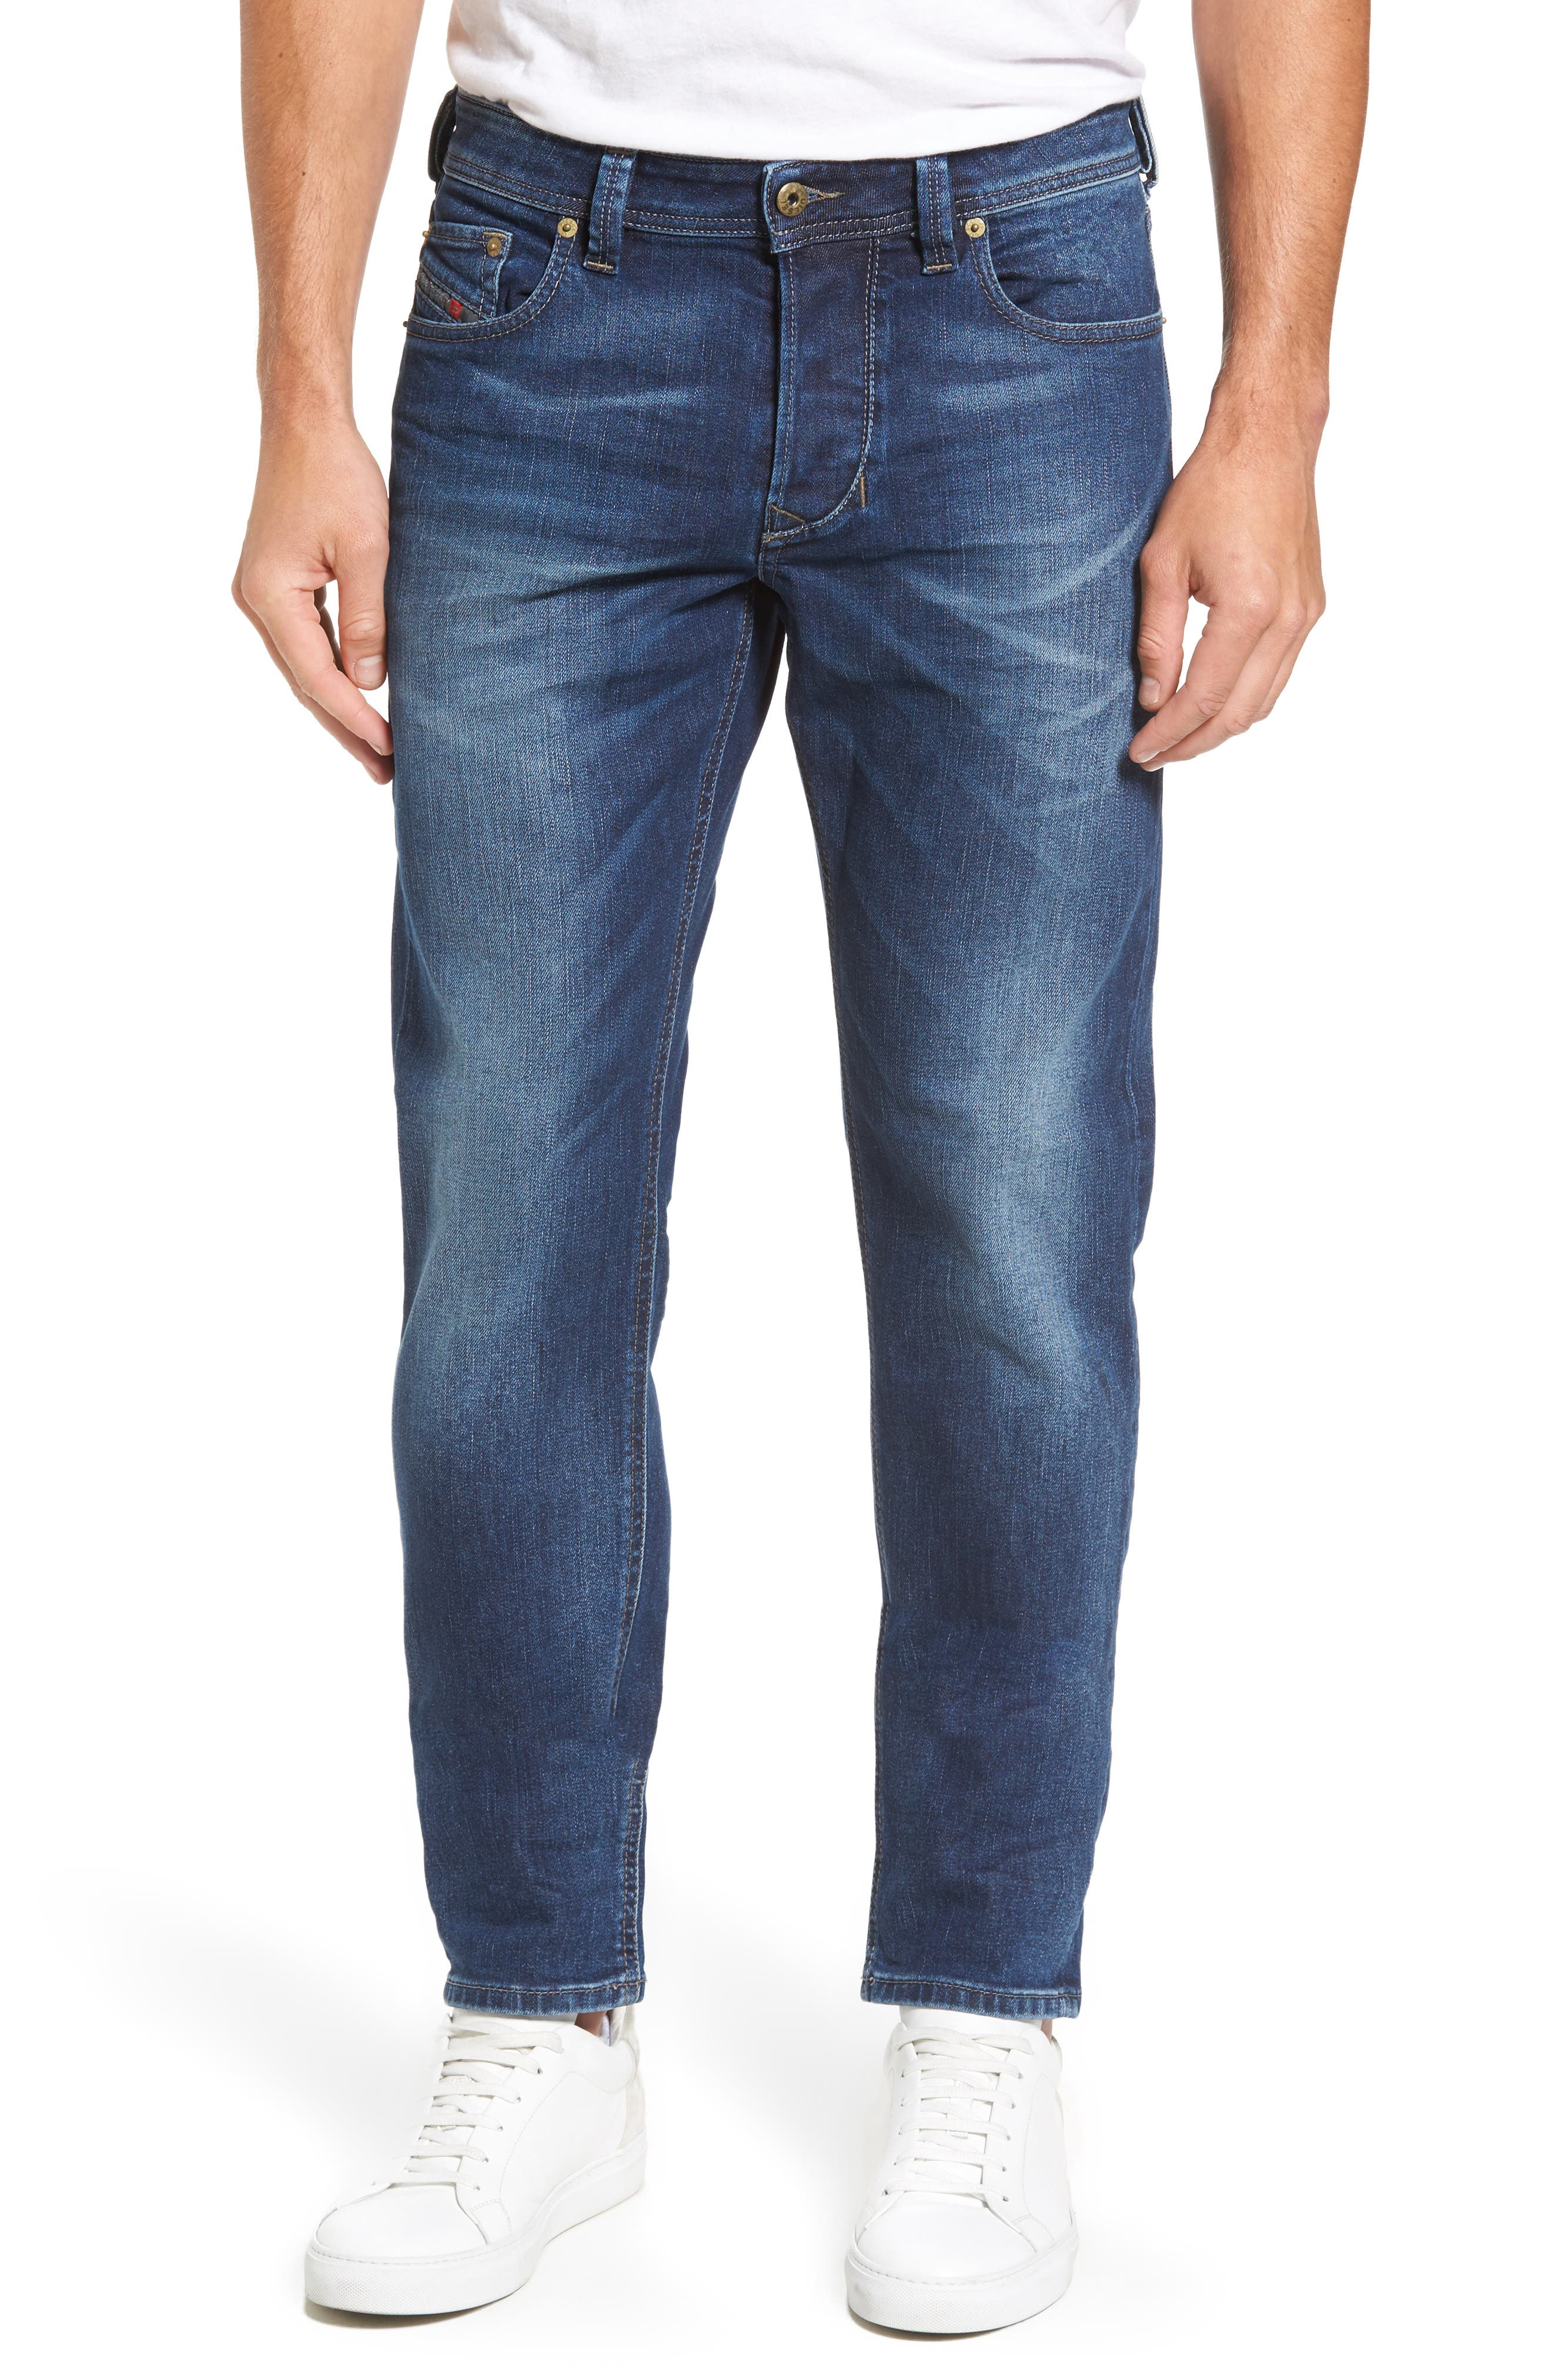 Alternate Image 1 Selected - DIESEL® Larkee-Beex Relaxed Fit Jeans